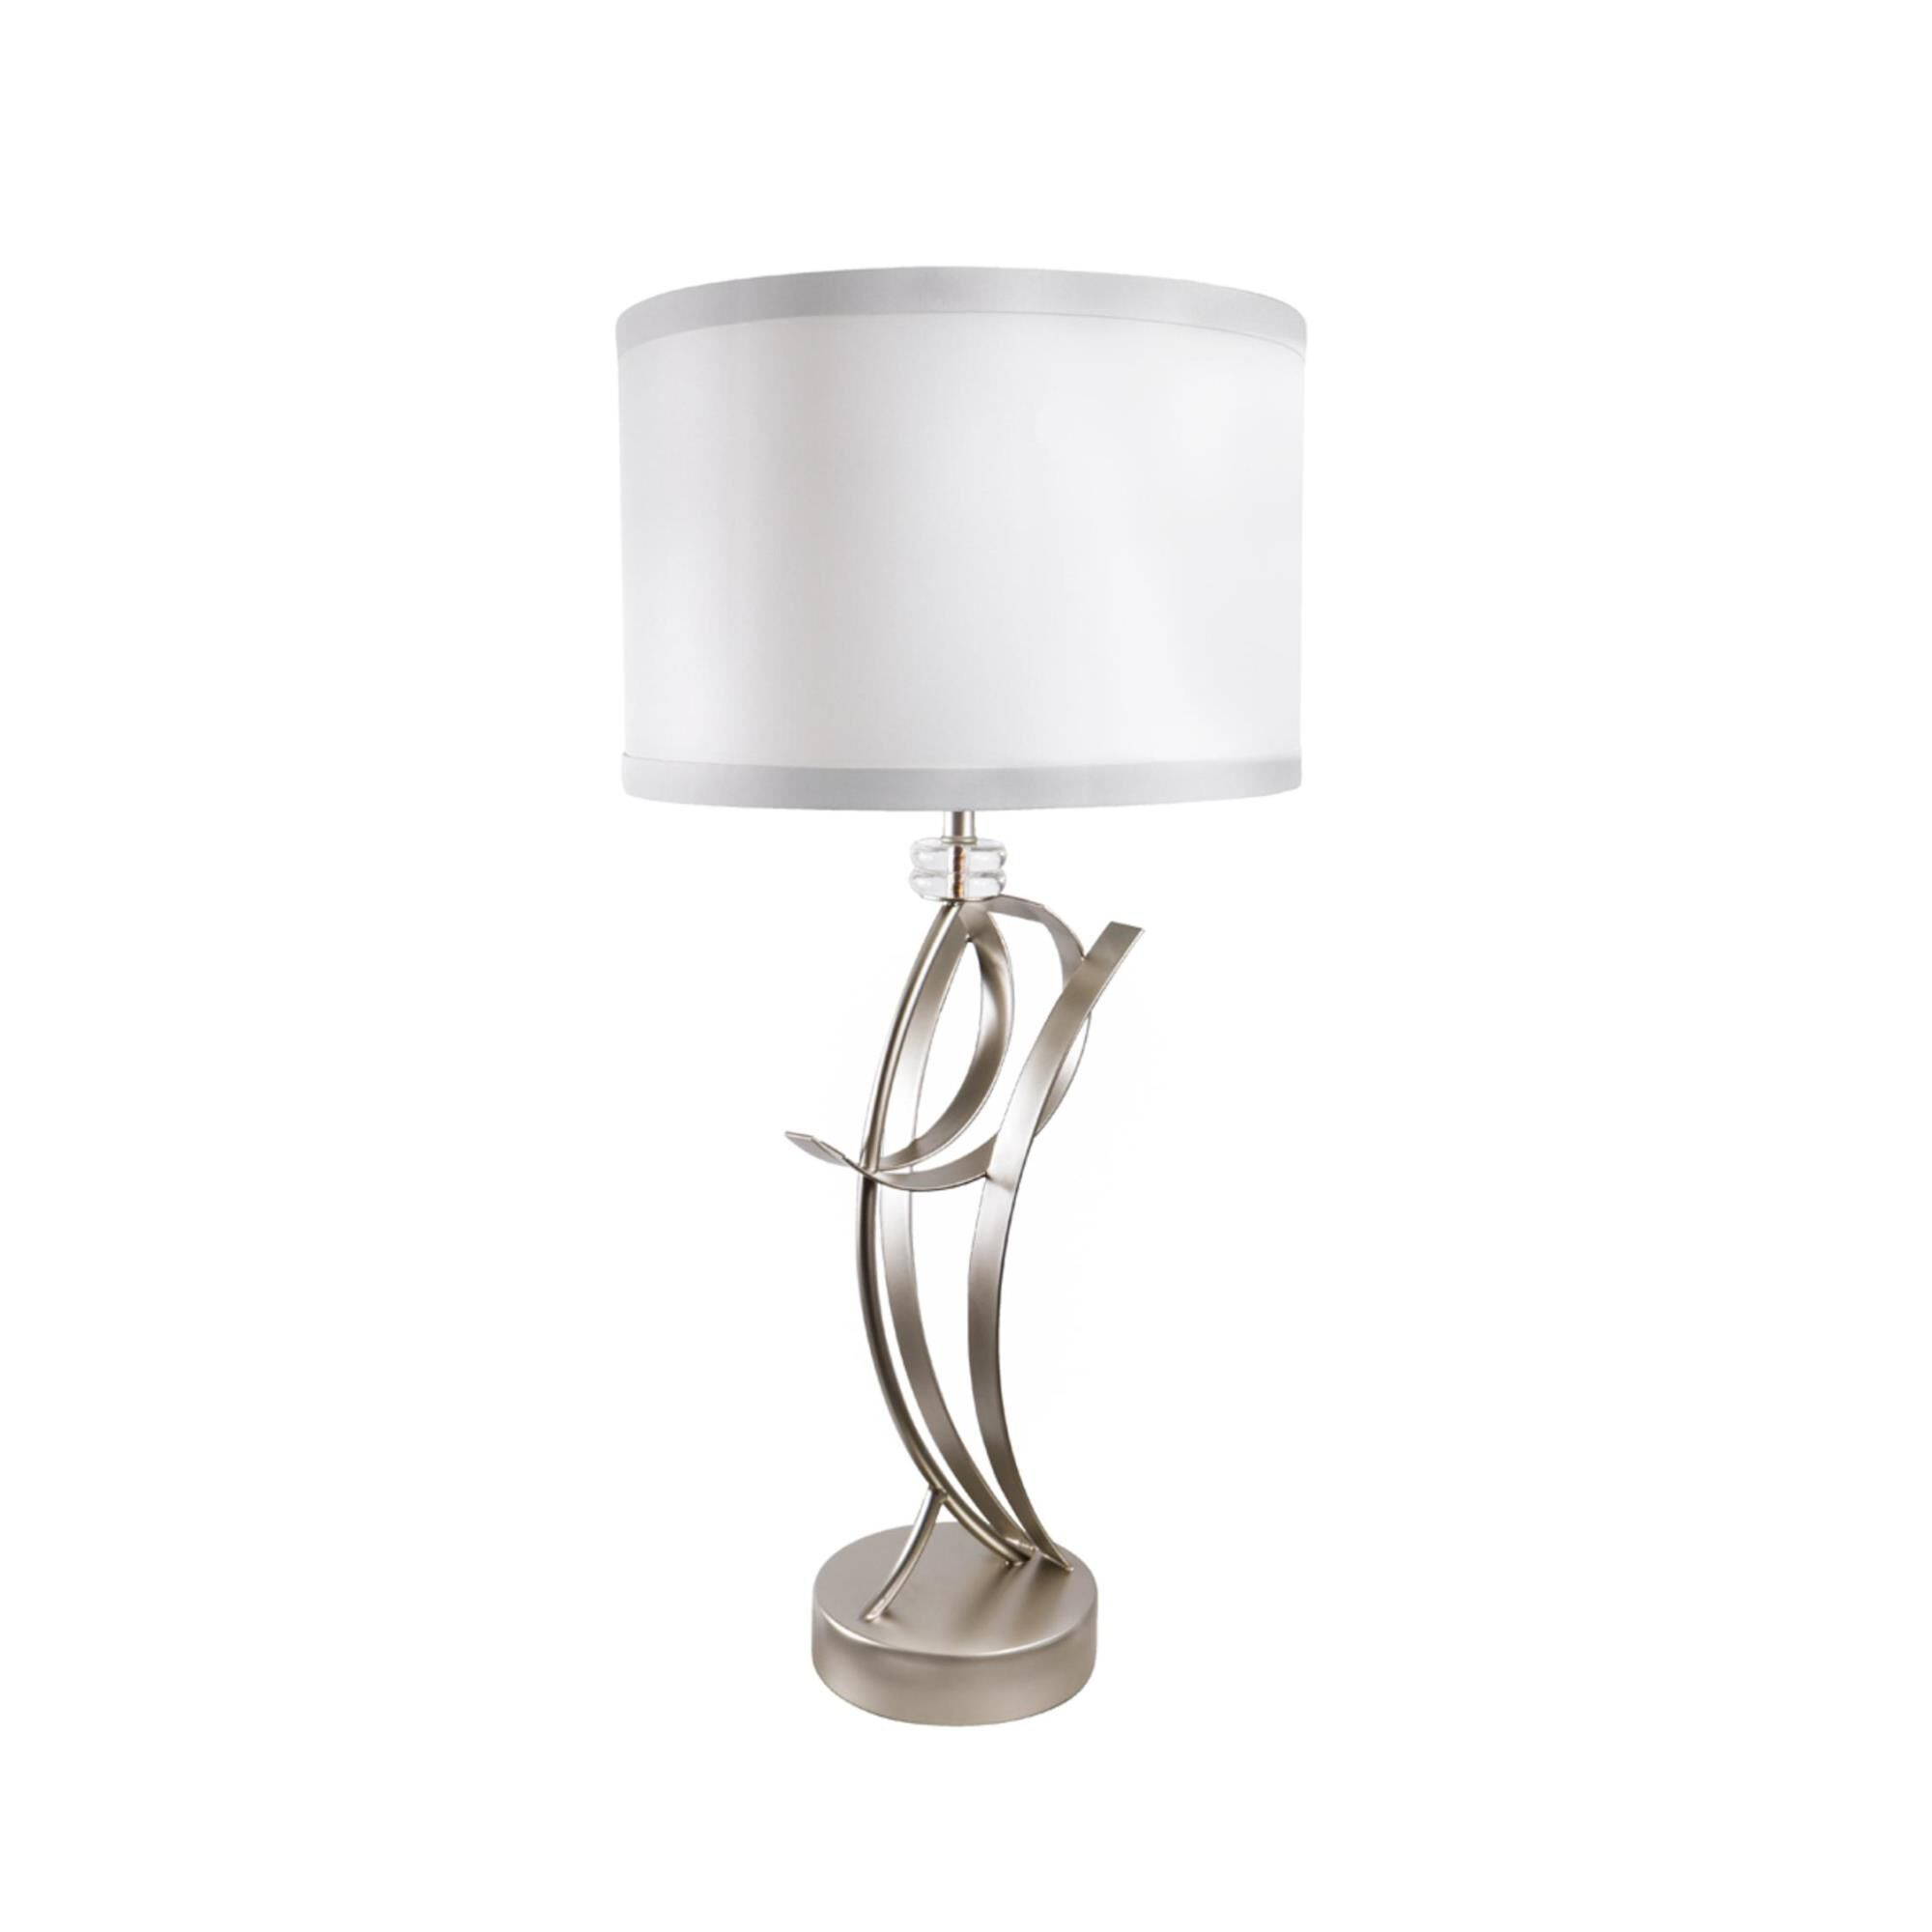 Van Teal Sparta 32 Inch Table Lamp Sparta - 733772 - Modern Contemporary Table Lamp